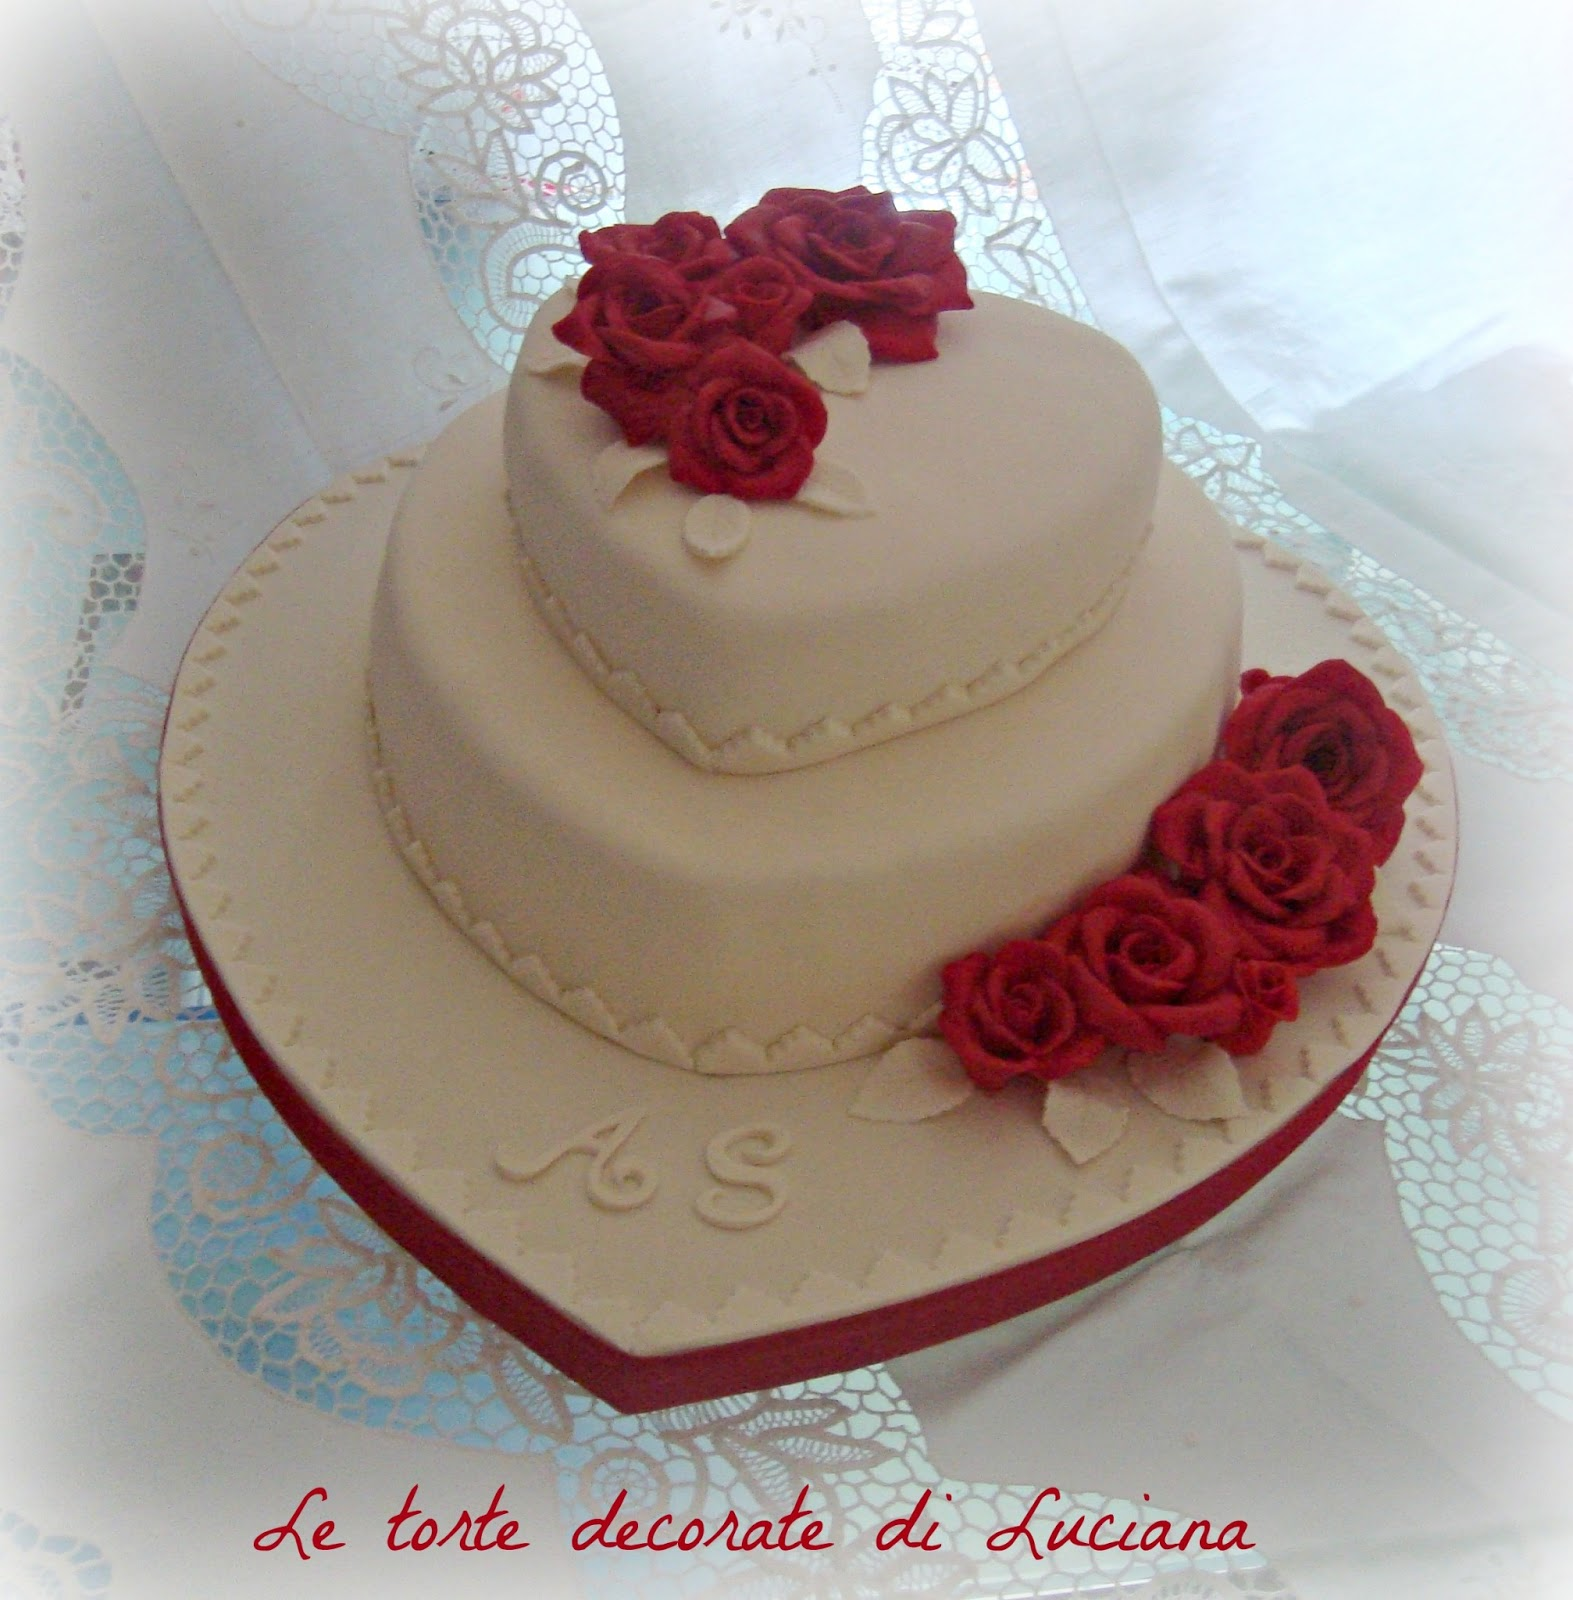 Le torte decorate torta matrimonio cuori e rose rosse for Piani a forma di artigiano